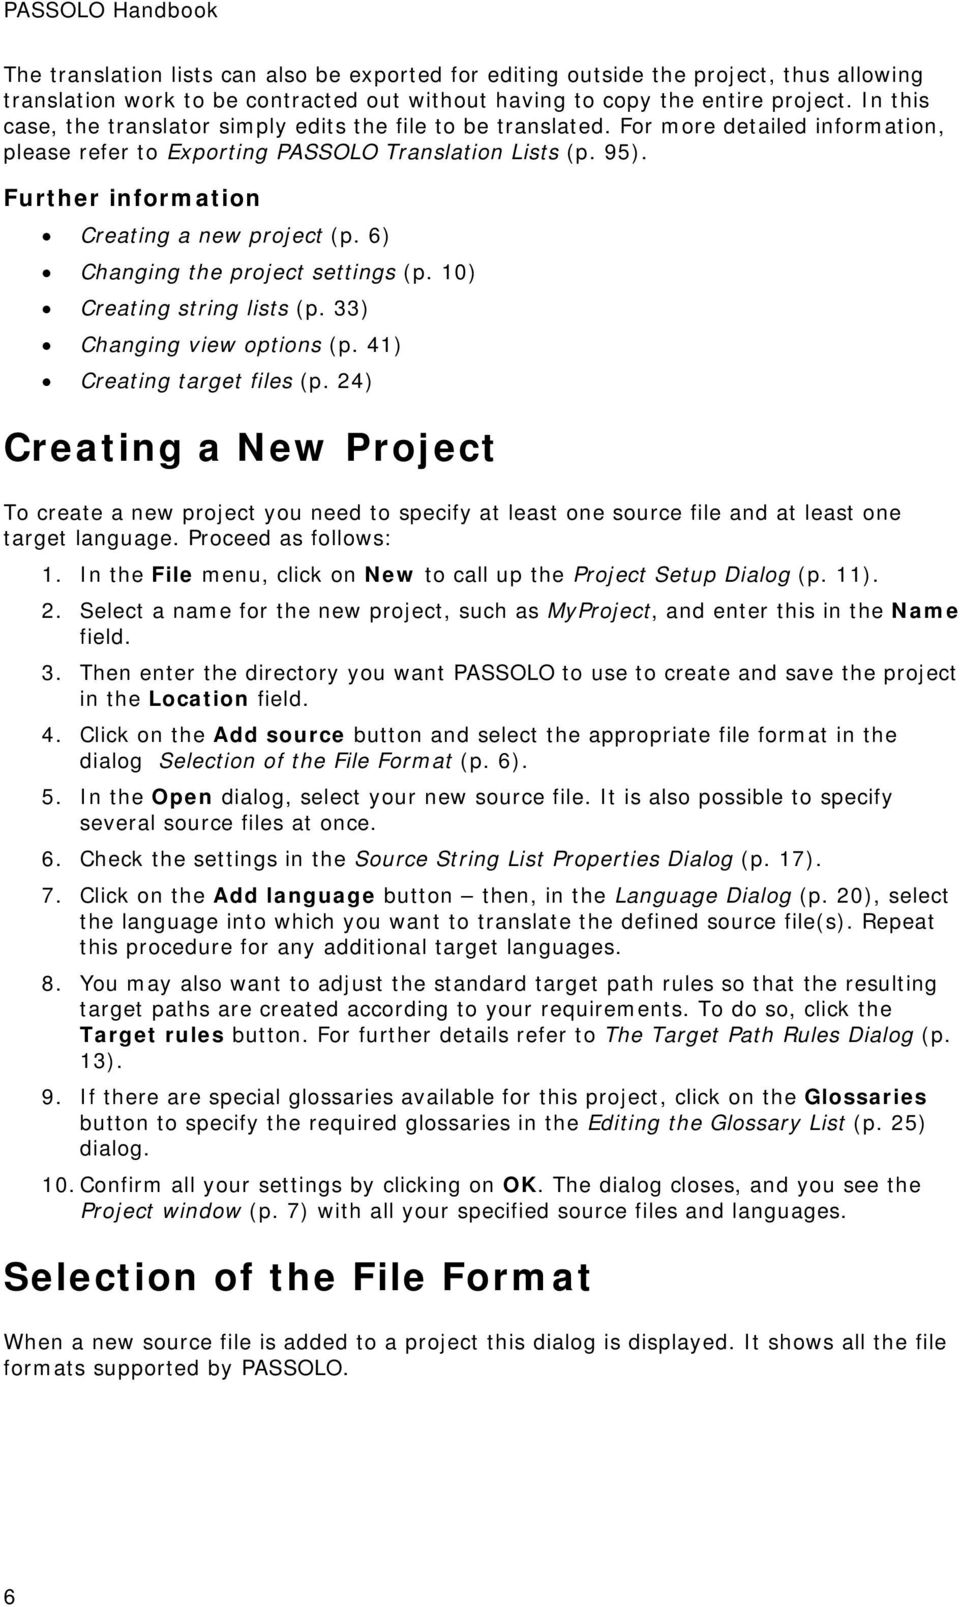 Further information Creating a new project (p. 6) Changing the project settings (p. 10) Creating string lists (p. 33) Changing view options (p. 41) Creating target files (p.